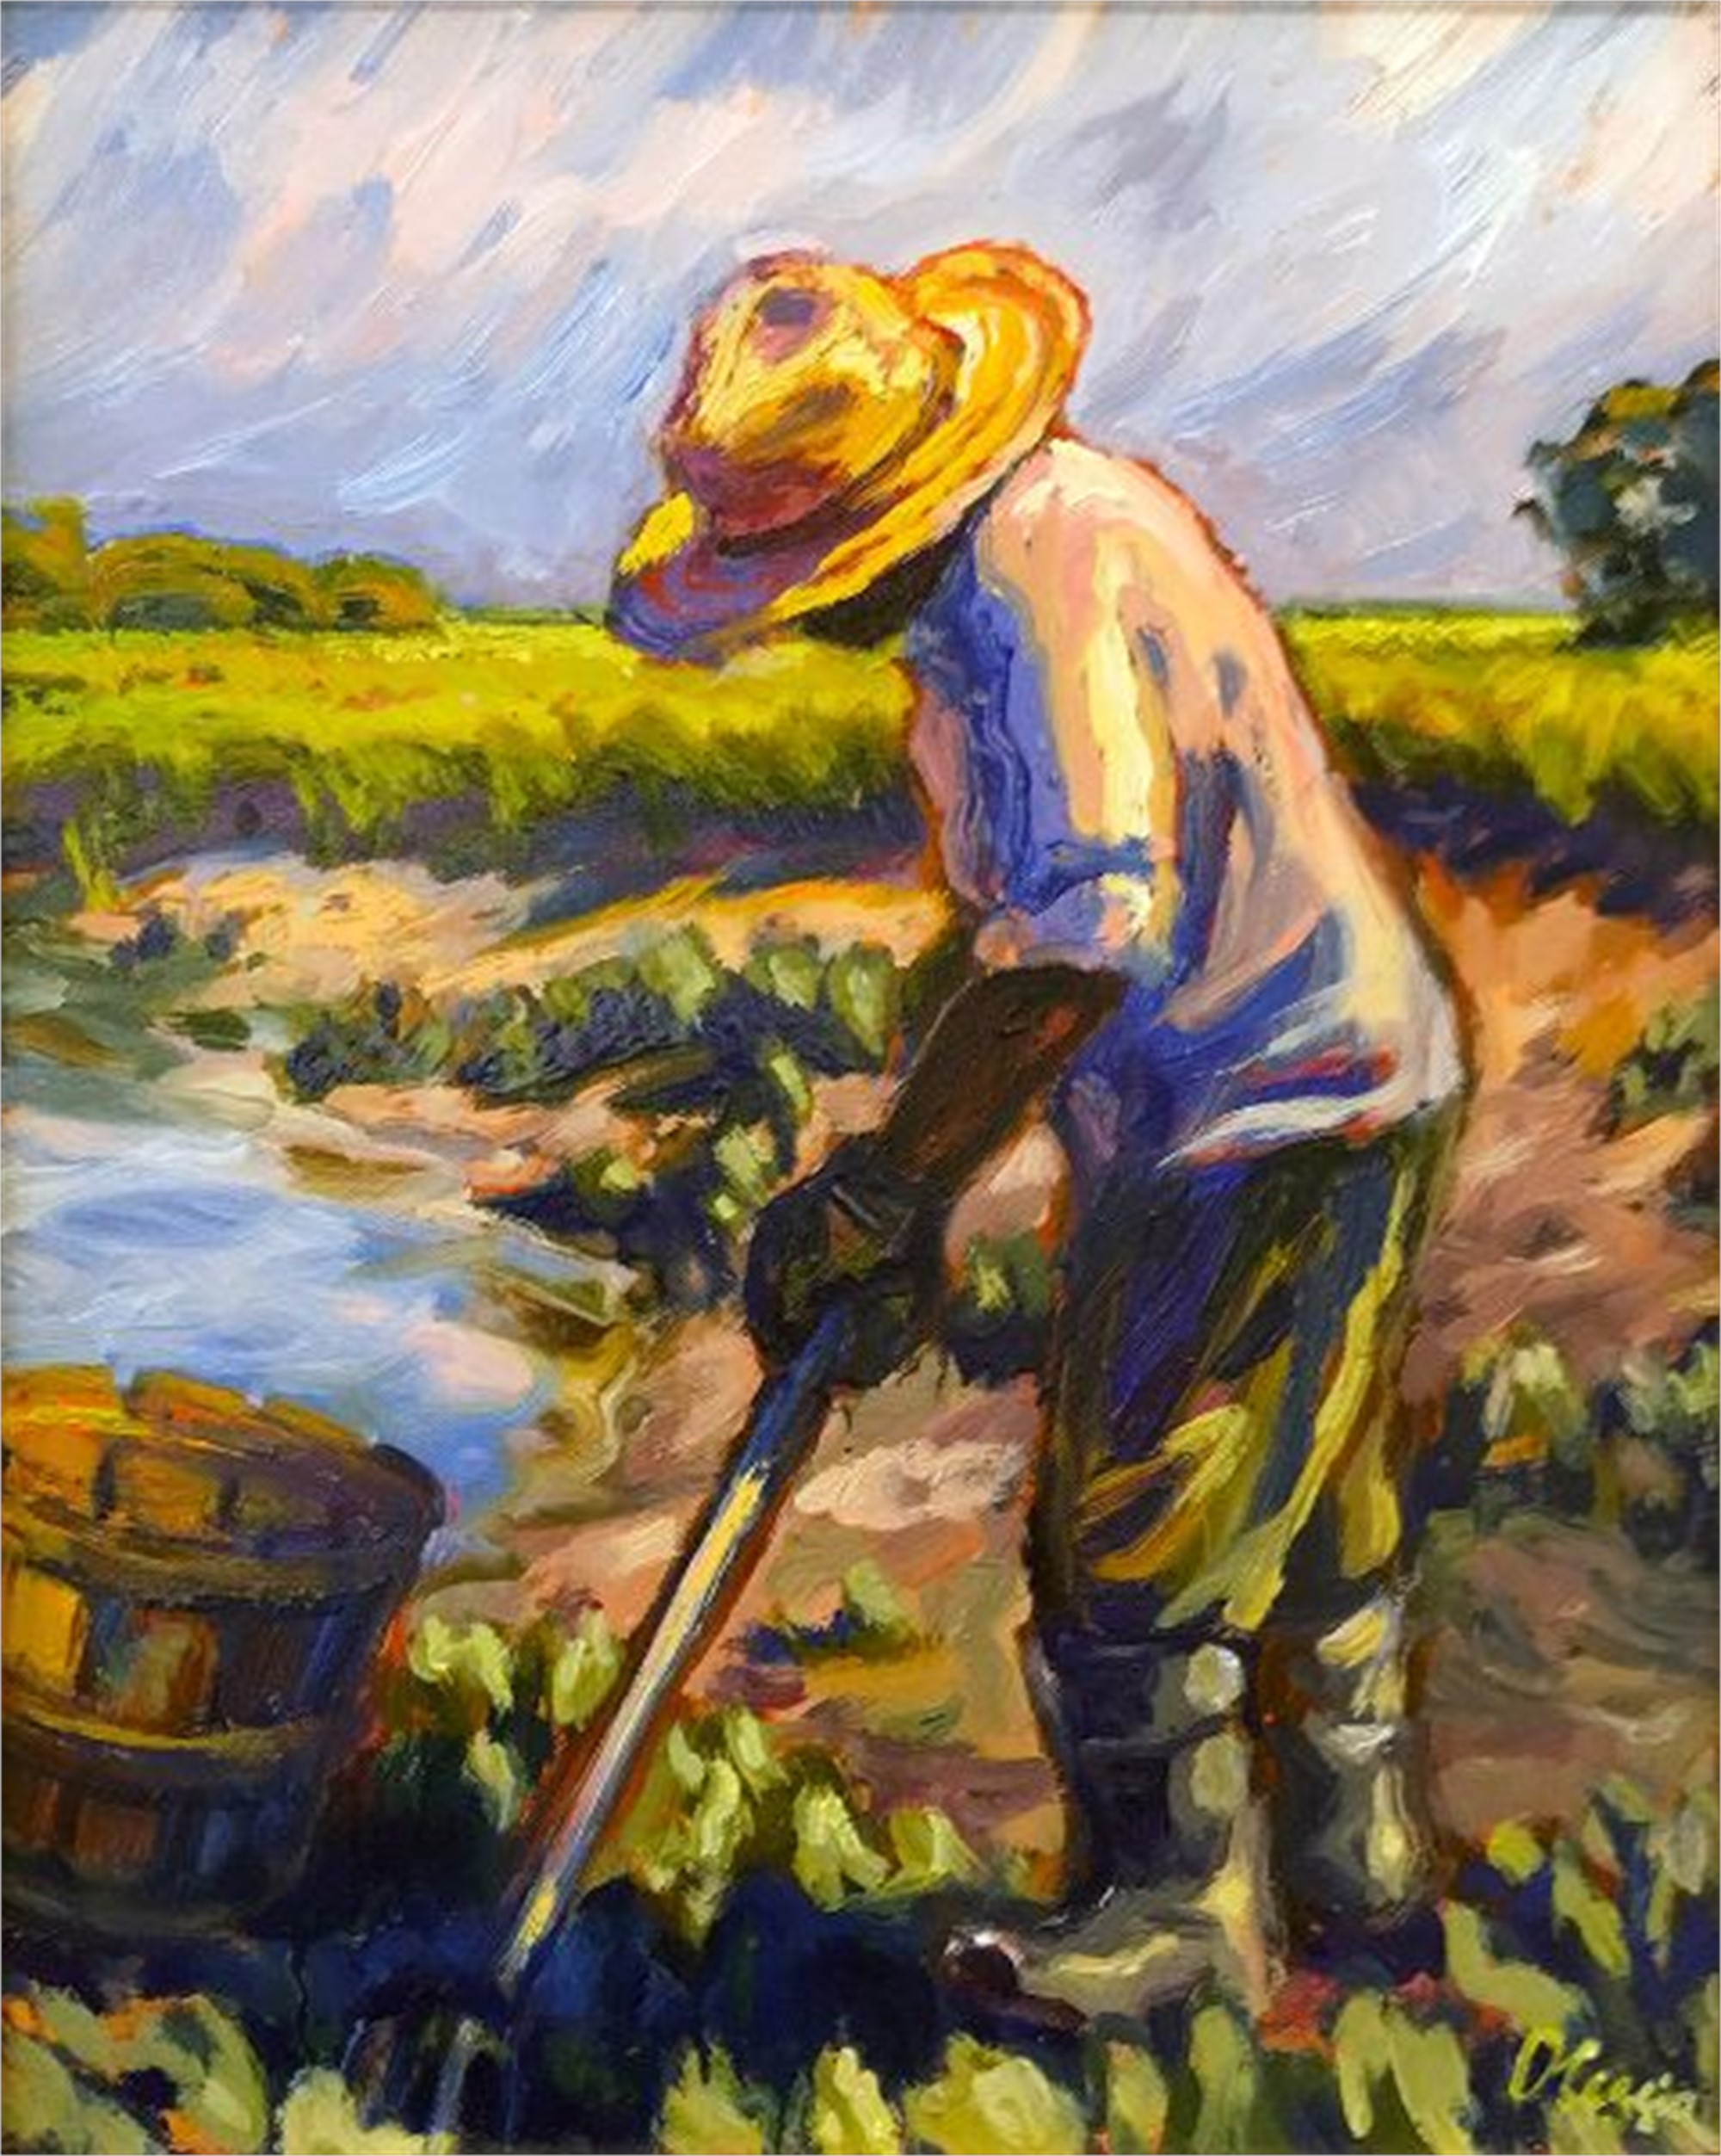 Pickin' Before the Storm by Olessia Maximenko